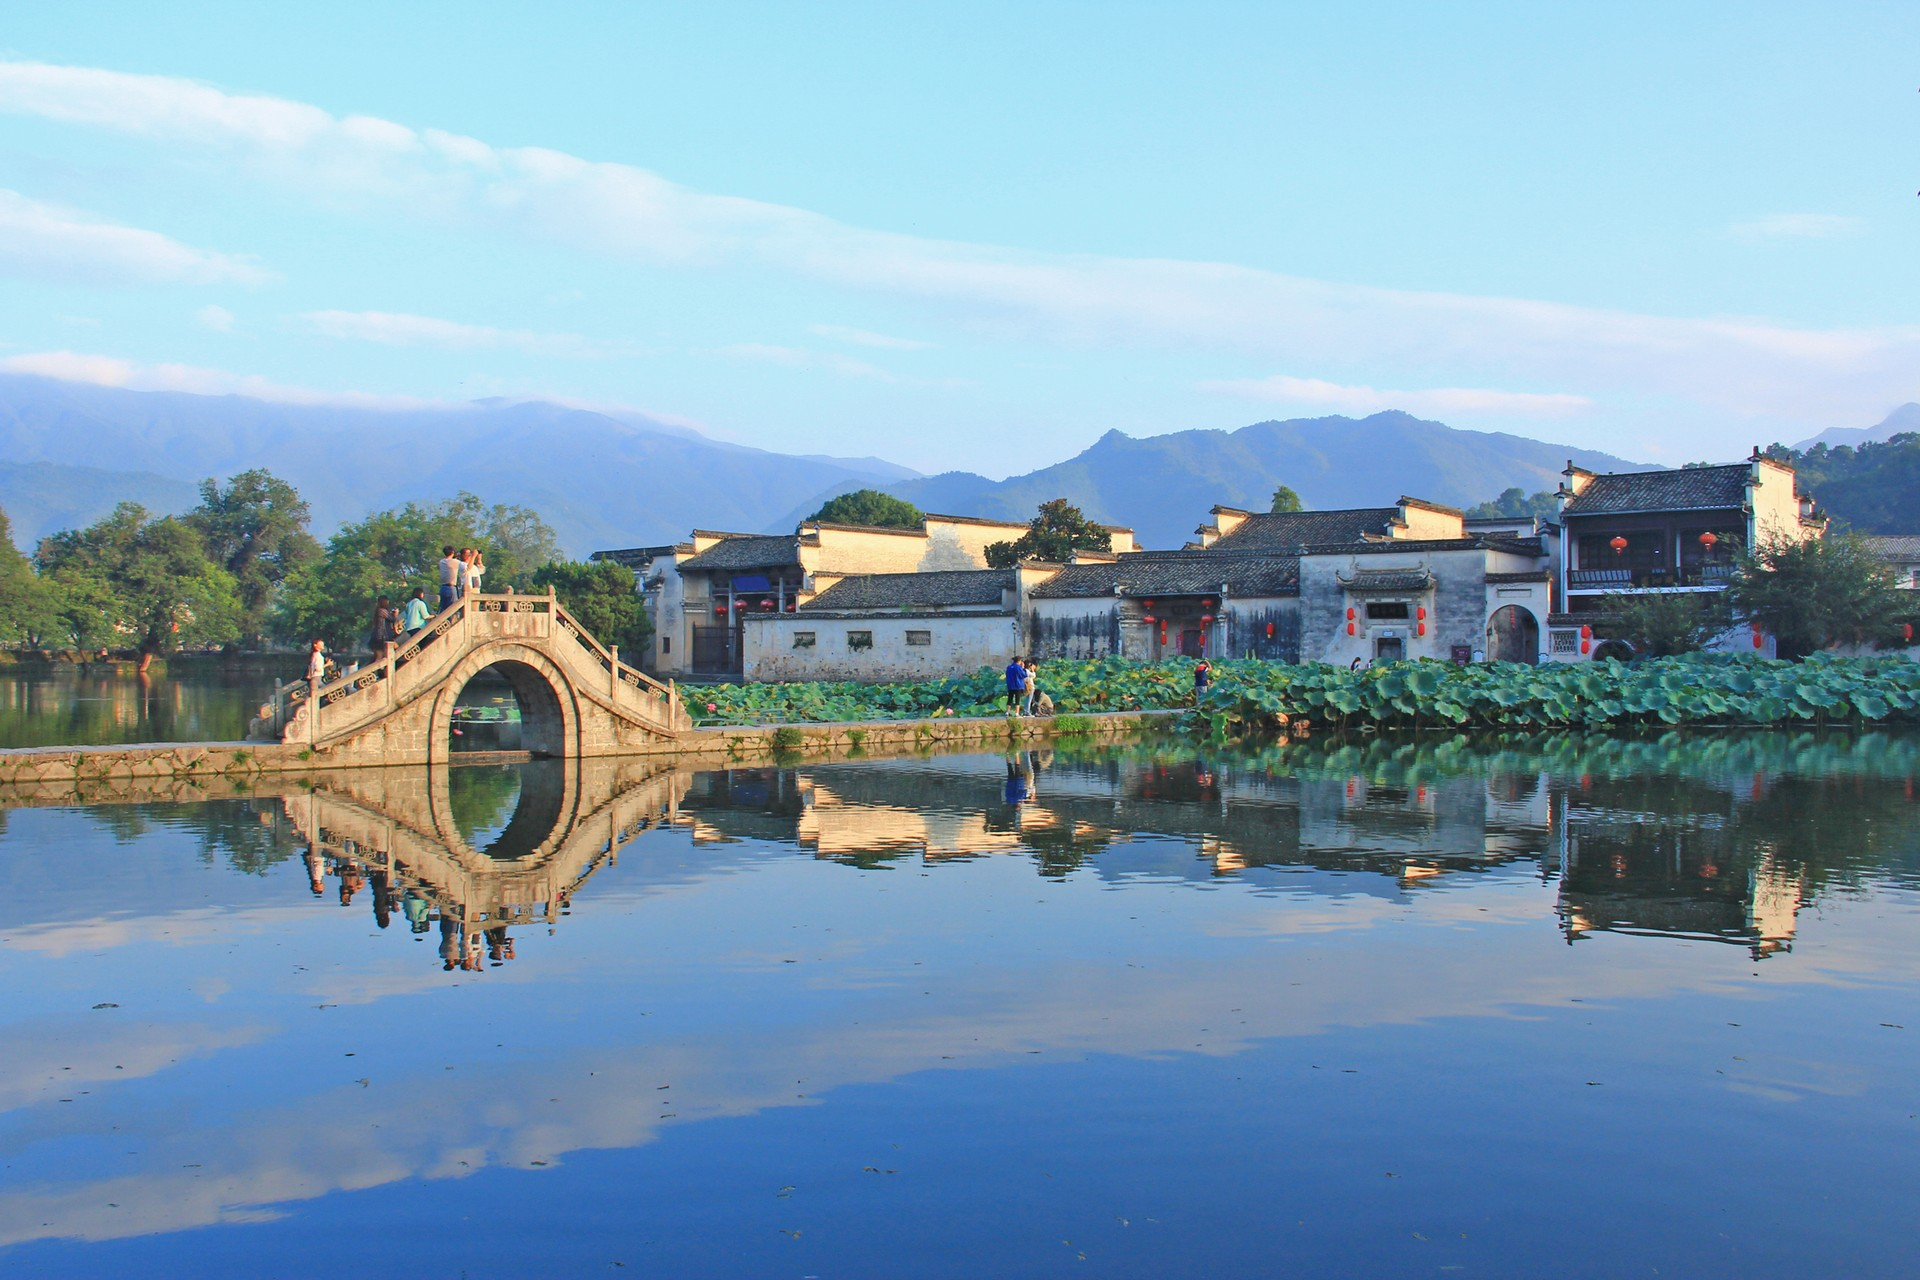 Hongcun village and bridge